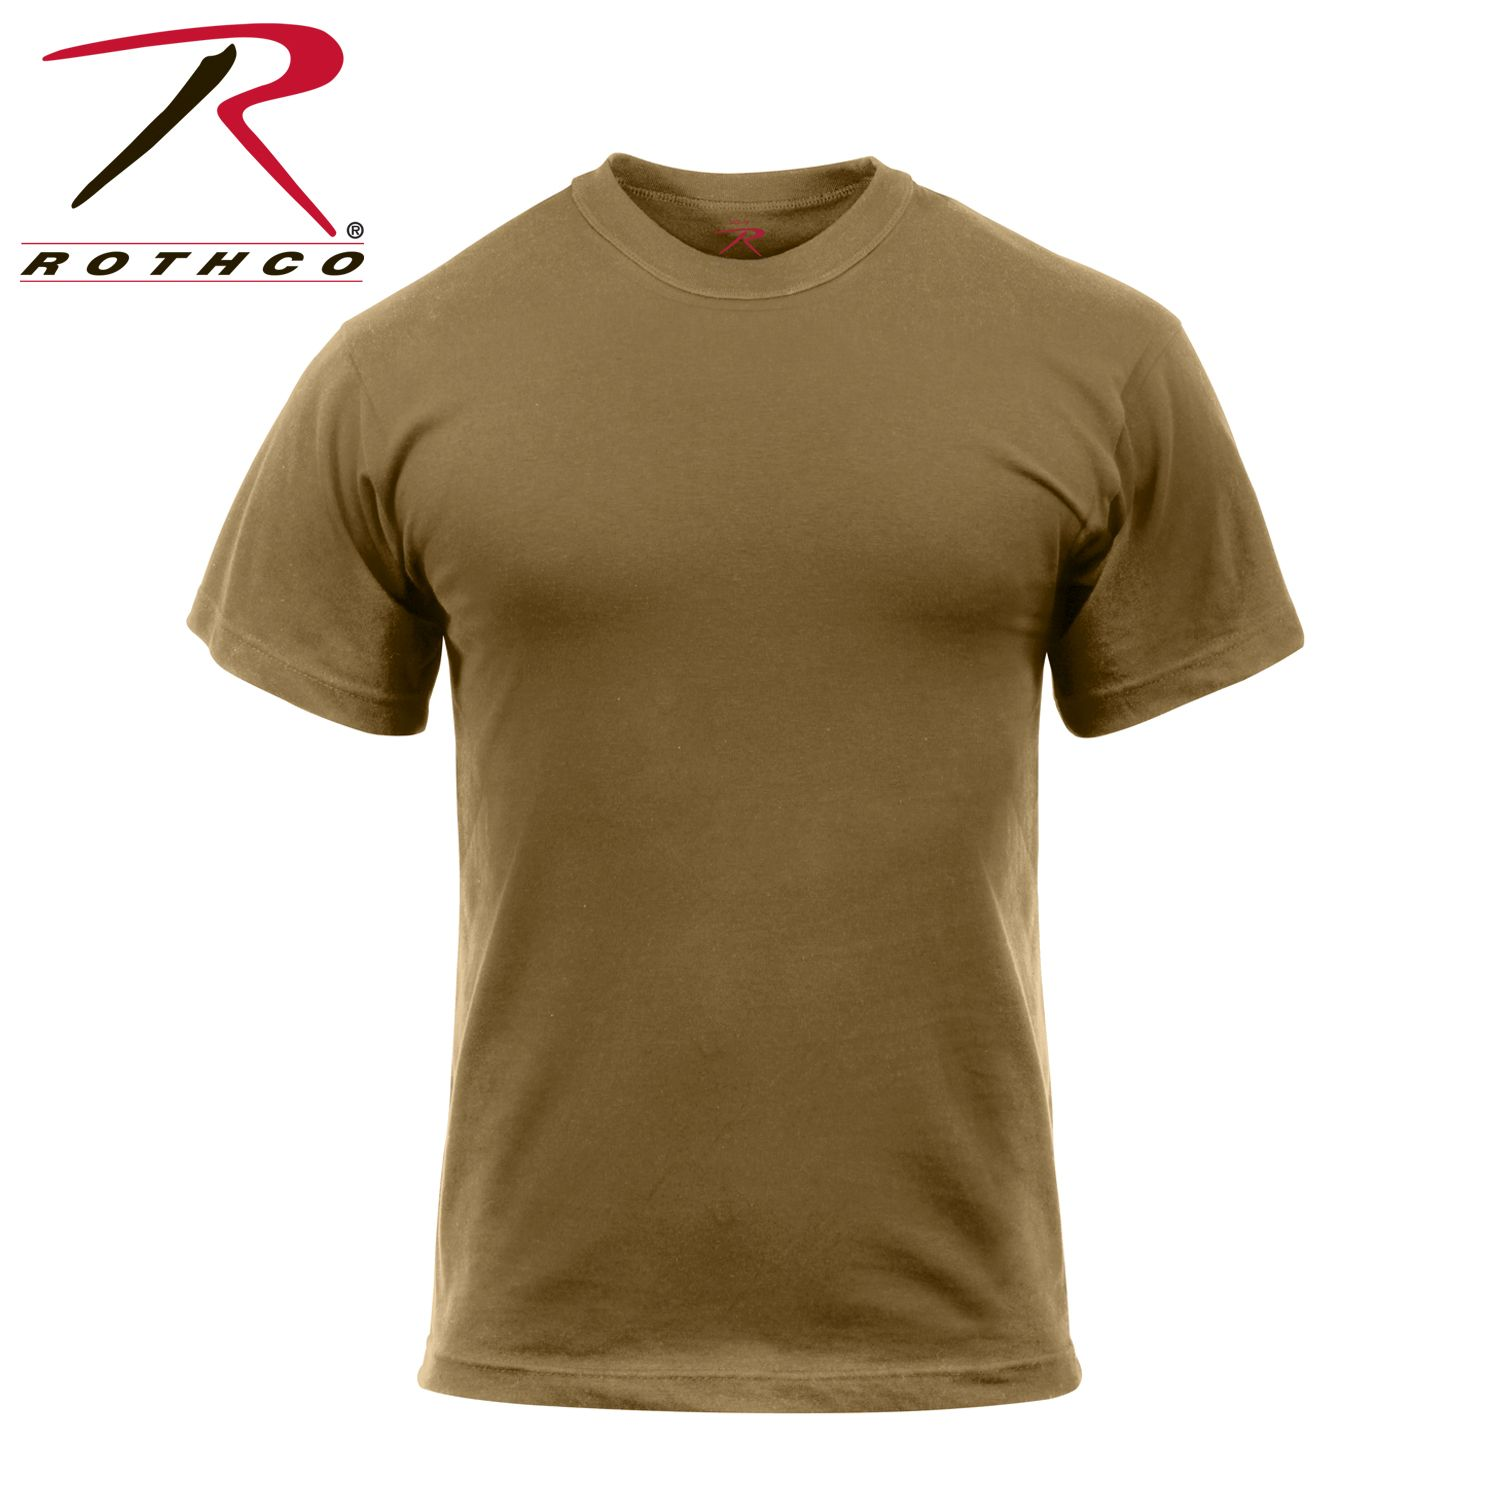 Buy Rothco Solid Color 100 Cotton T Shirt Rothco Online At Best